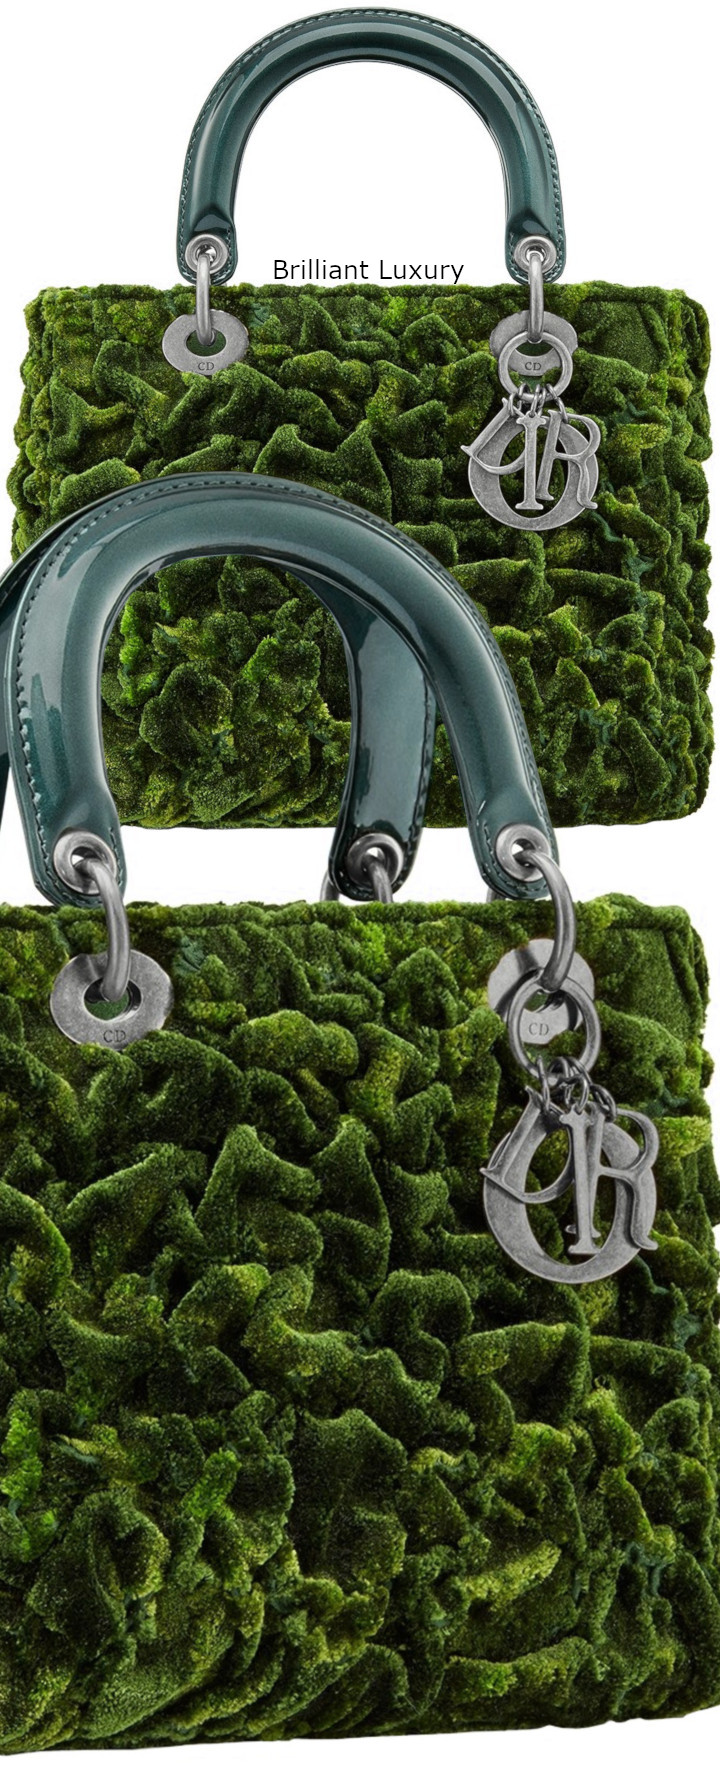 Brilliant Luxury│Lady DIOR Mini Art Bag in cotton silk, embroidered with texture, create a vegetal moss effect, Tie and dye effect green color, Designer Lee Bul